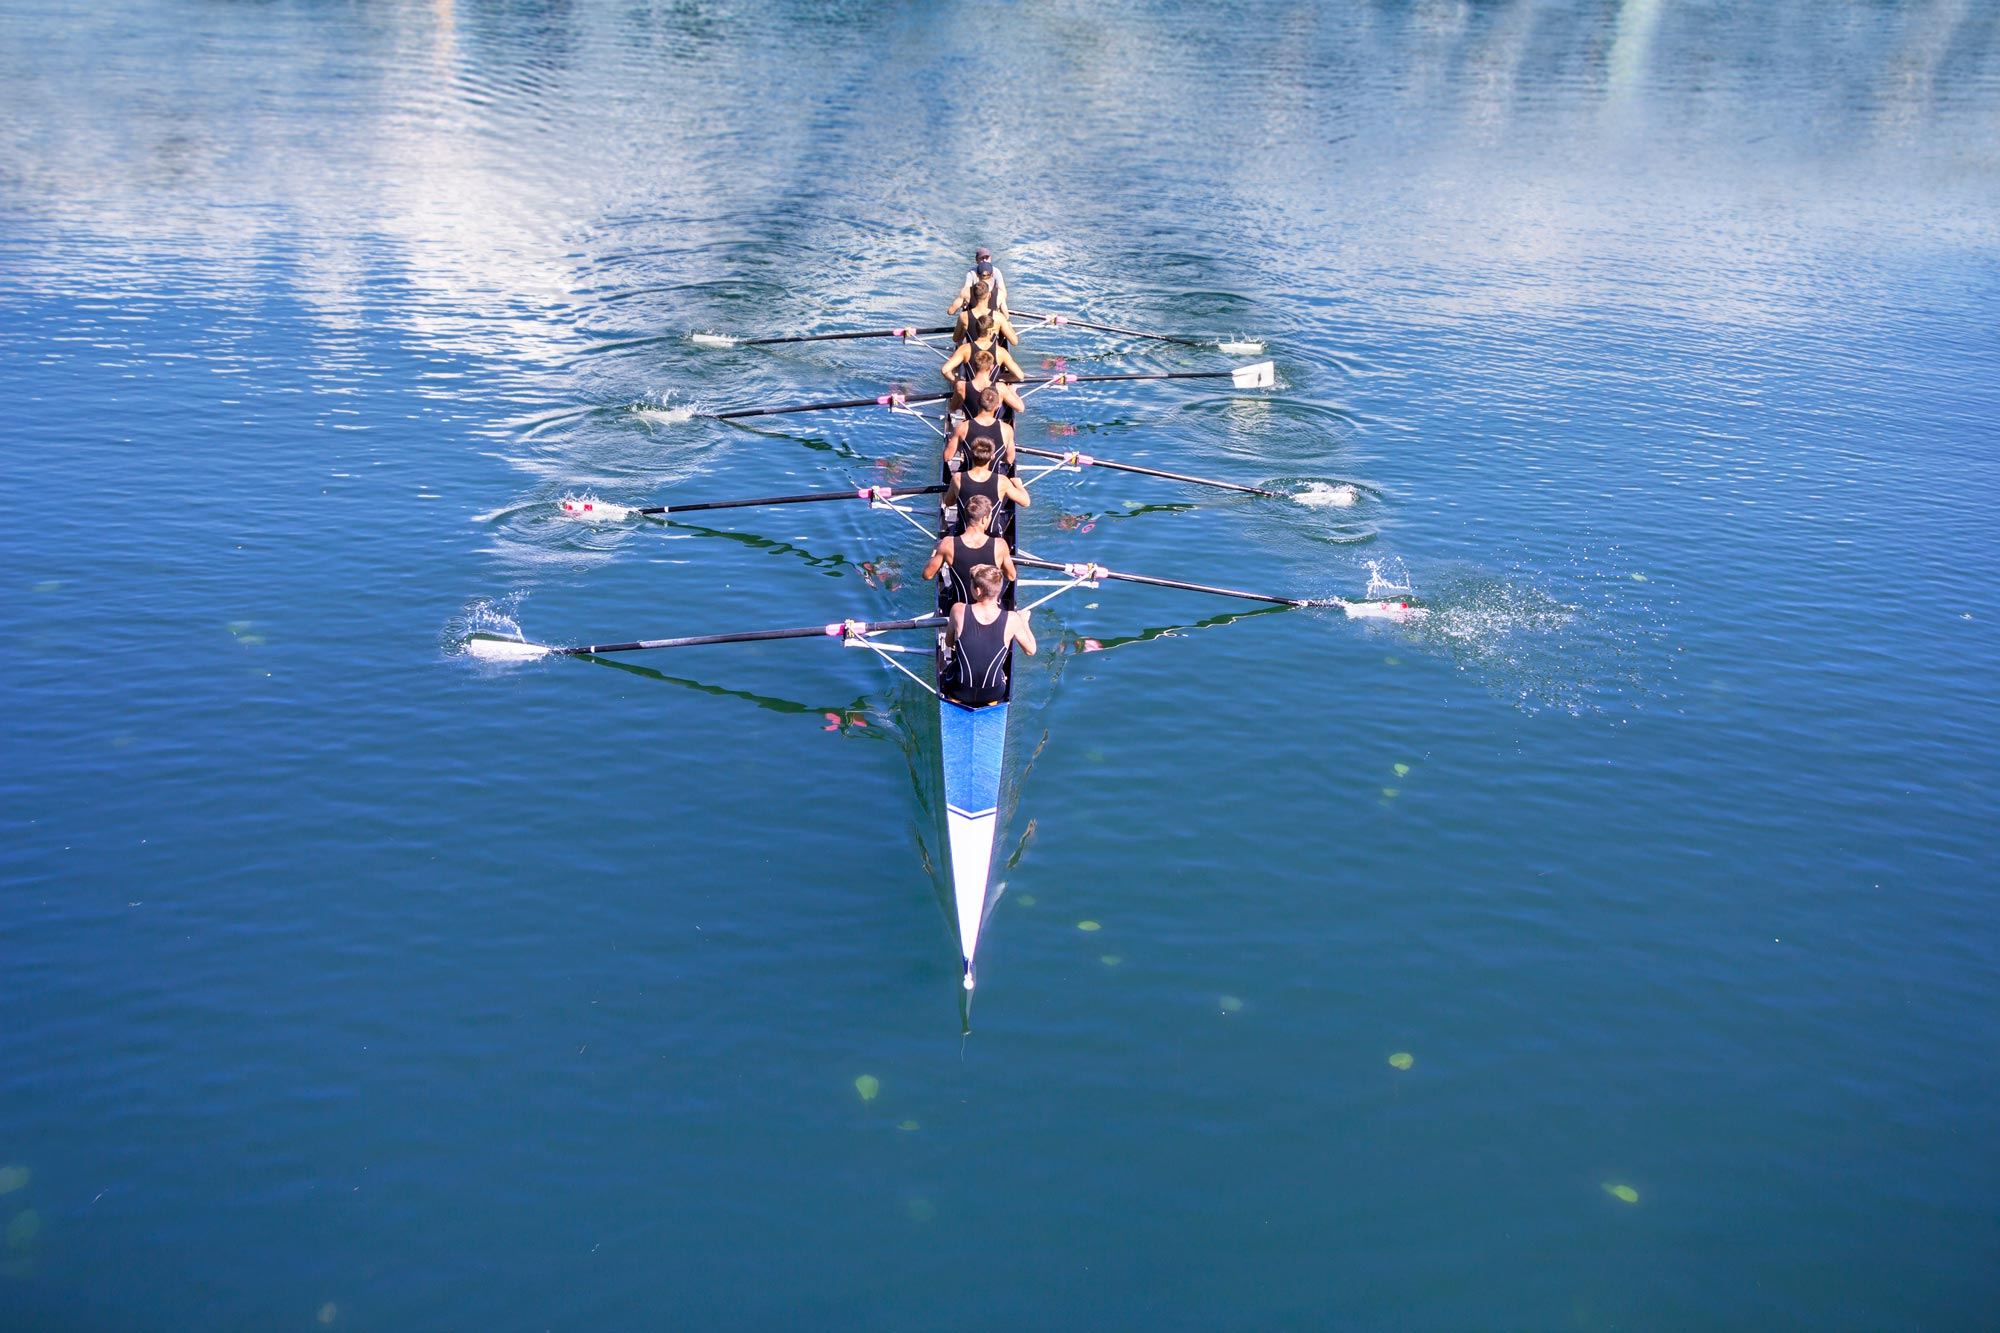 Image: Boat with 8 rowers